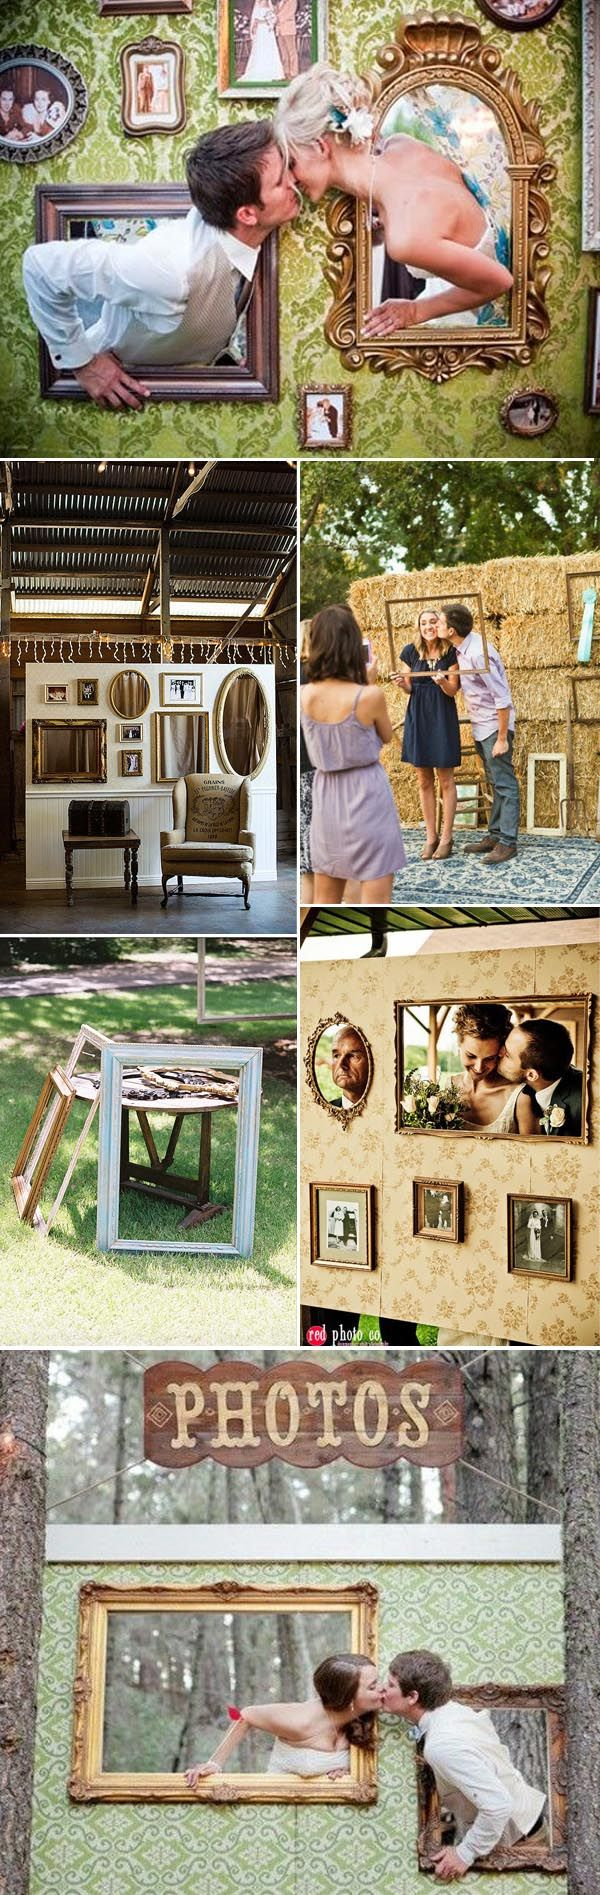 Creative fun wedding photo booth ideas made of picture frames. See more vintage wedding photo frame ideas here: http://blog.stylishwedd.com/39-creative-vintage-wedding-ideas-with-photo-frame-s/